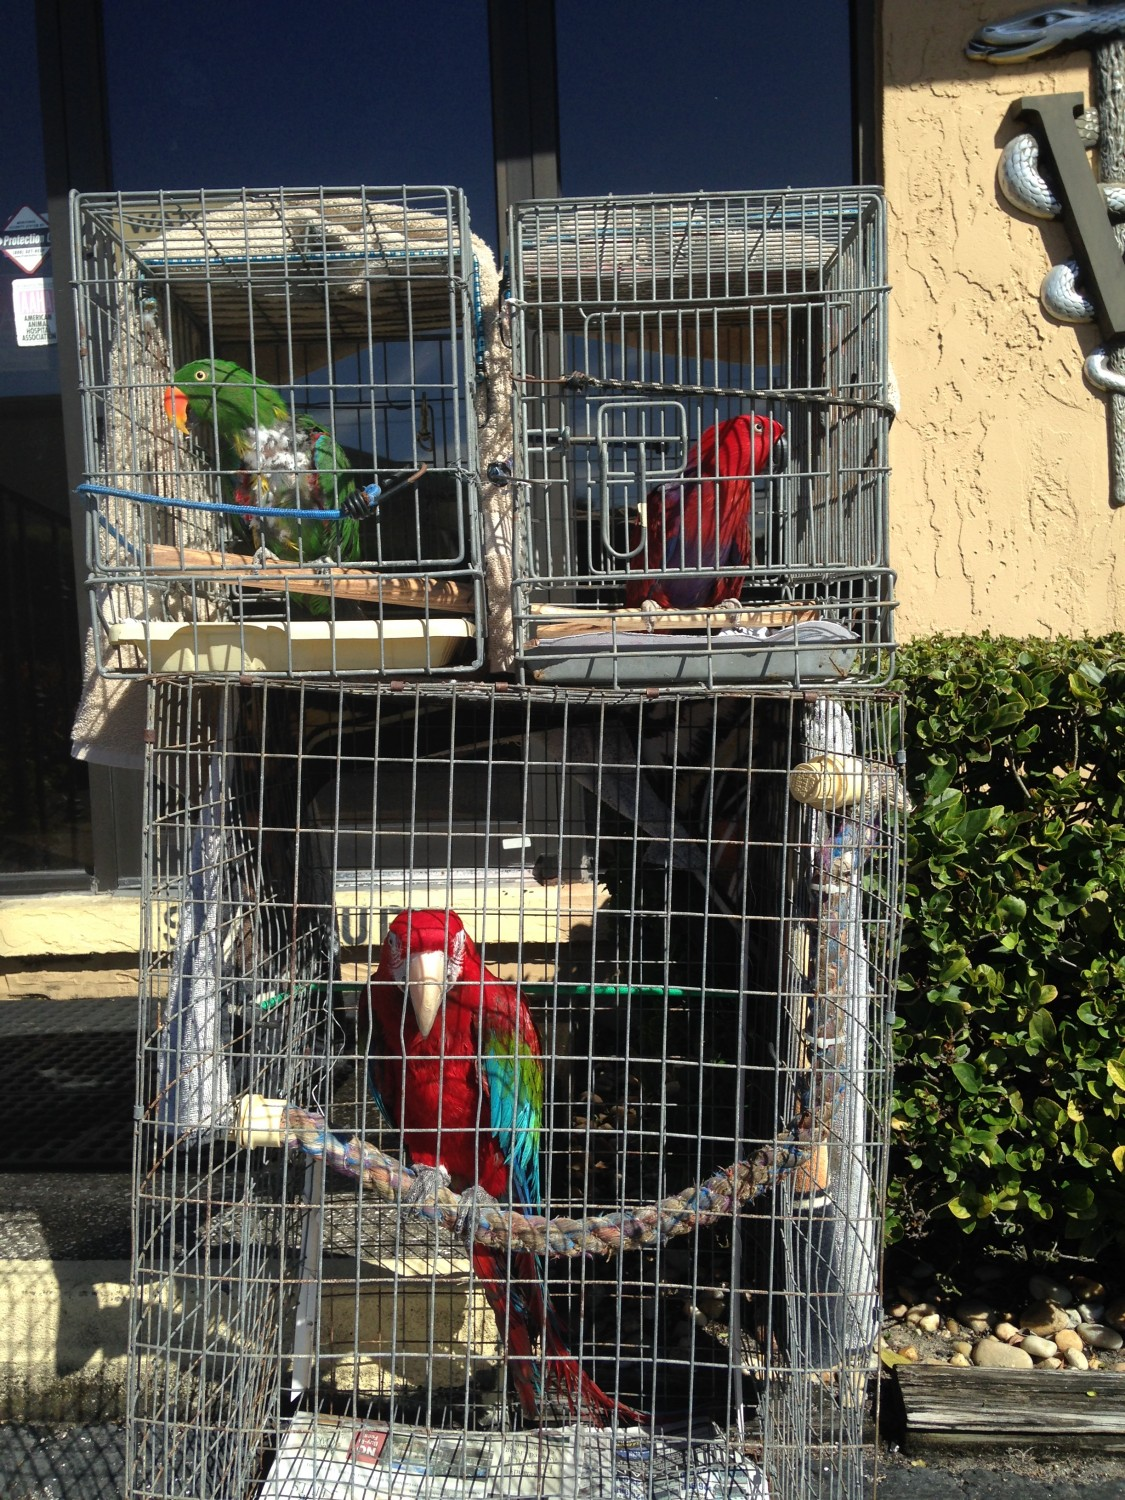 Grooming time for Esmerelda and Pickles the Gran Eclectis and Mugzie below is a Scarlet Macaw